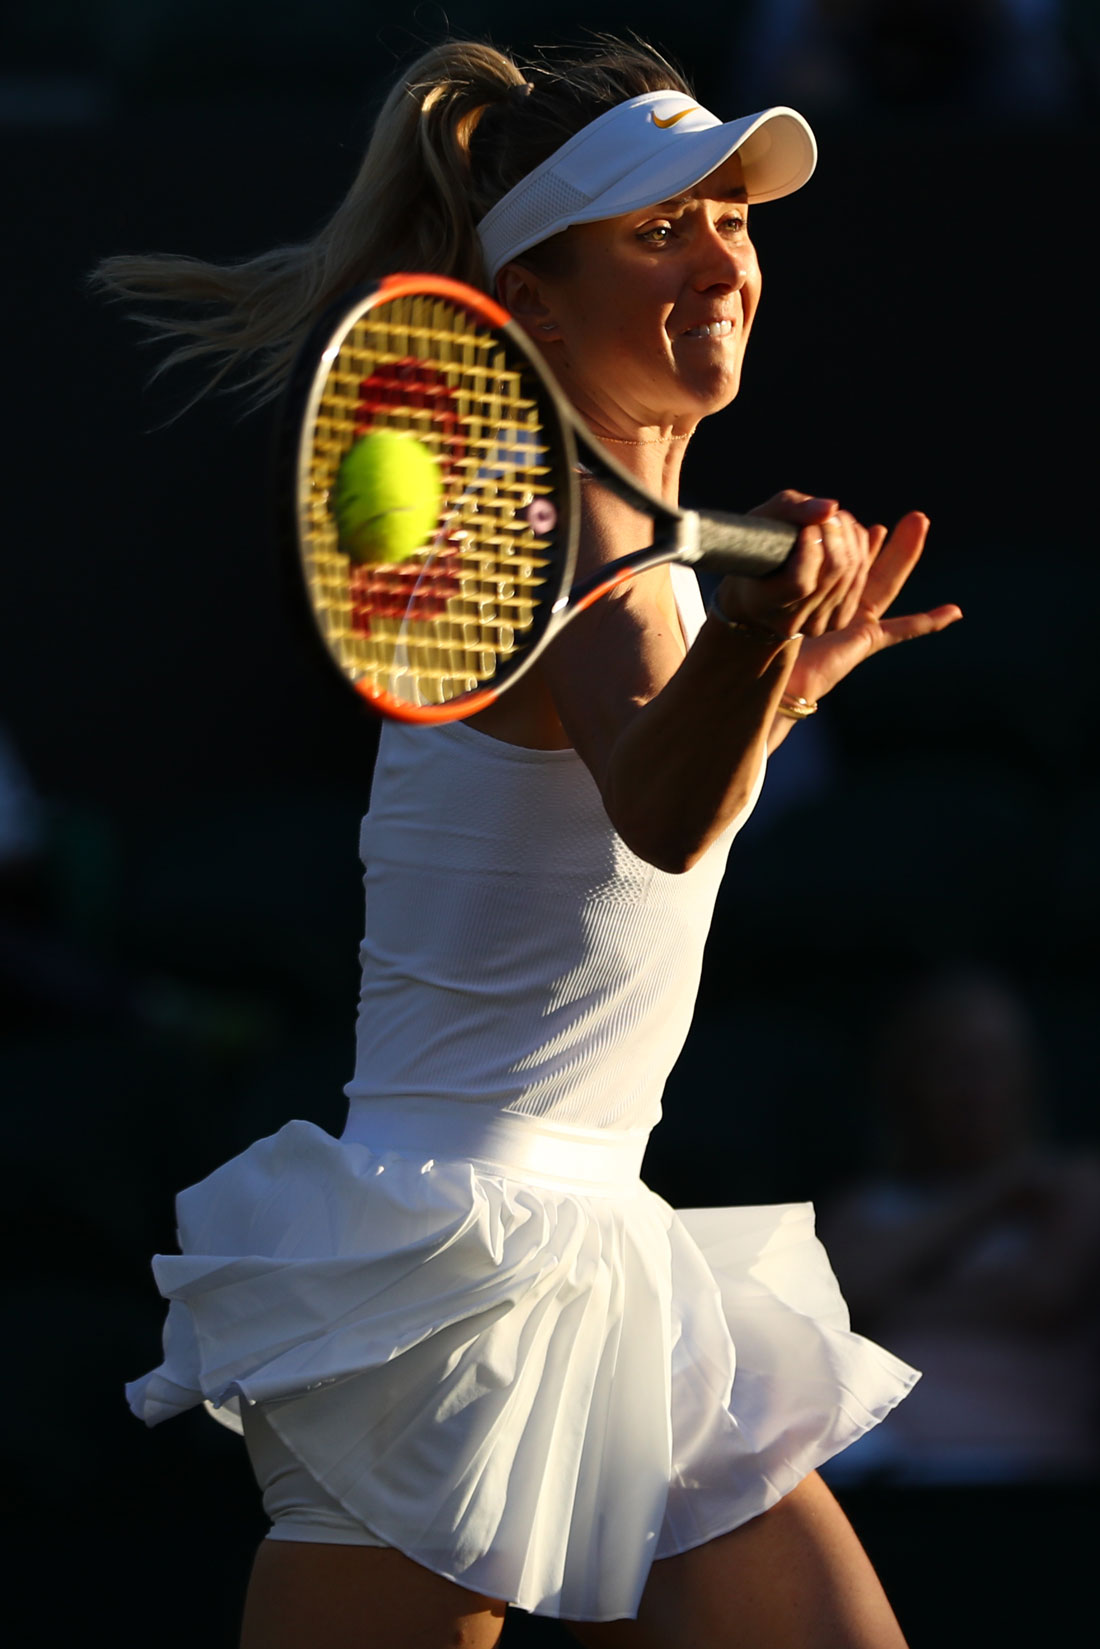 Elina Suitolina of Ukraine, Wimbledon Championships, 3 July 2018